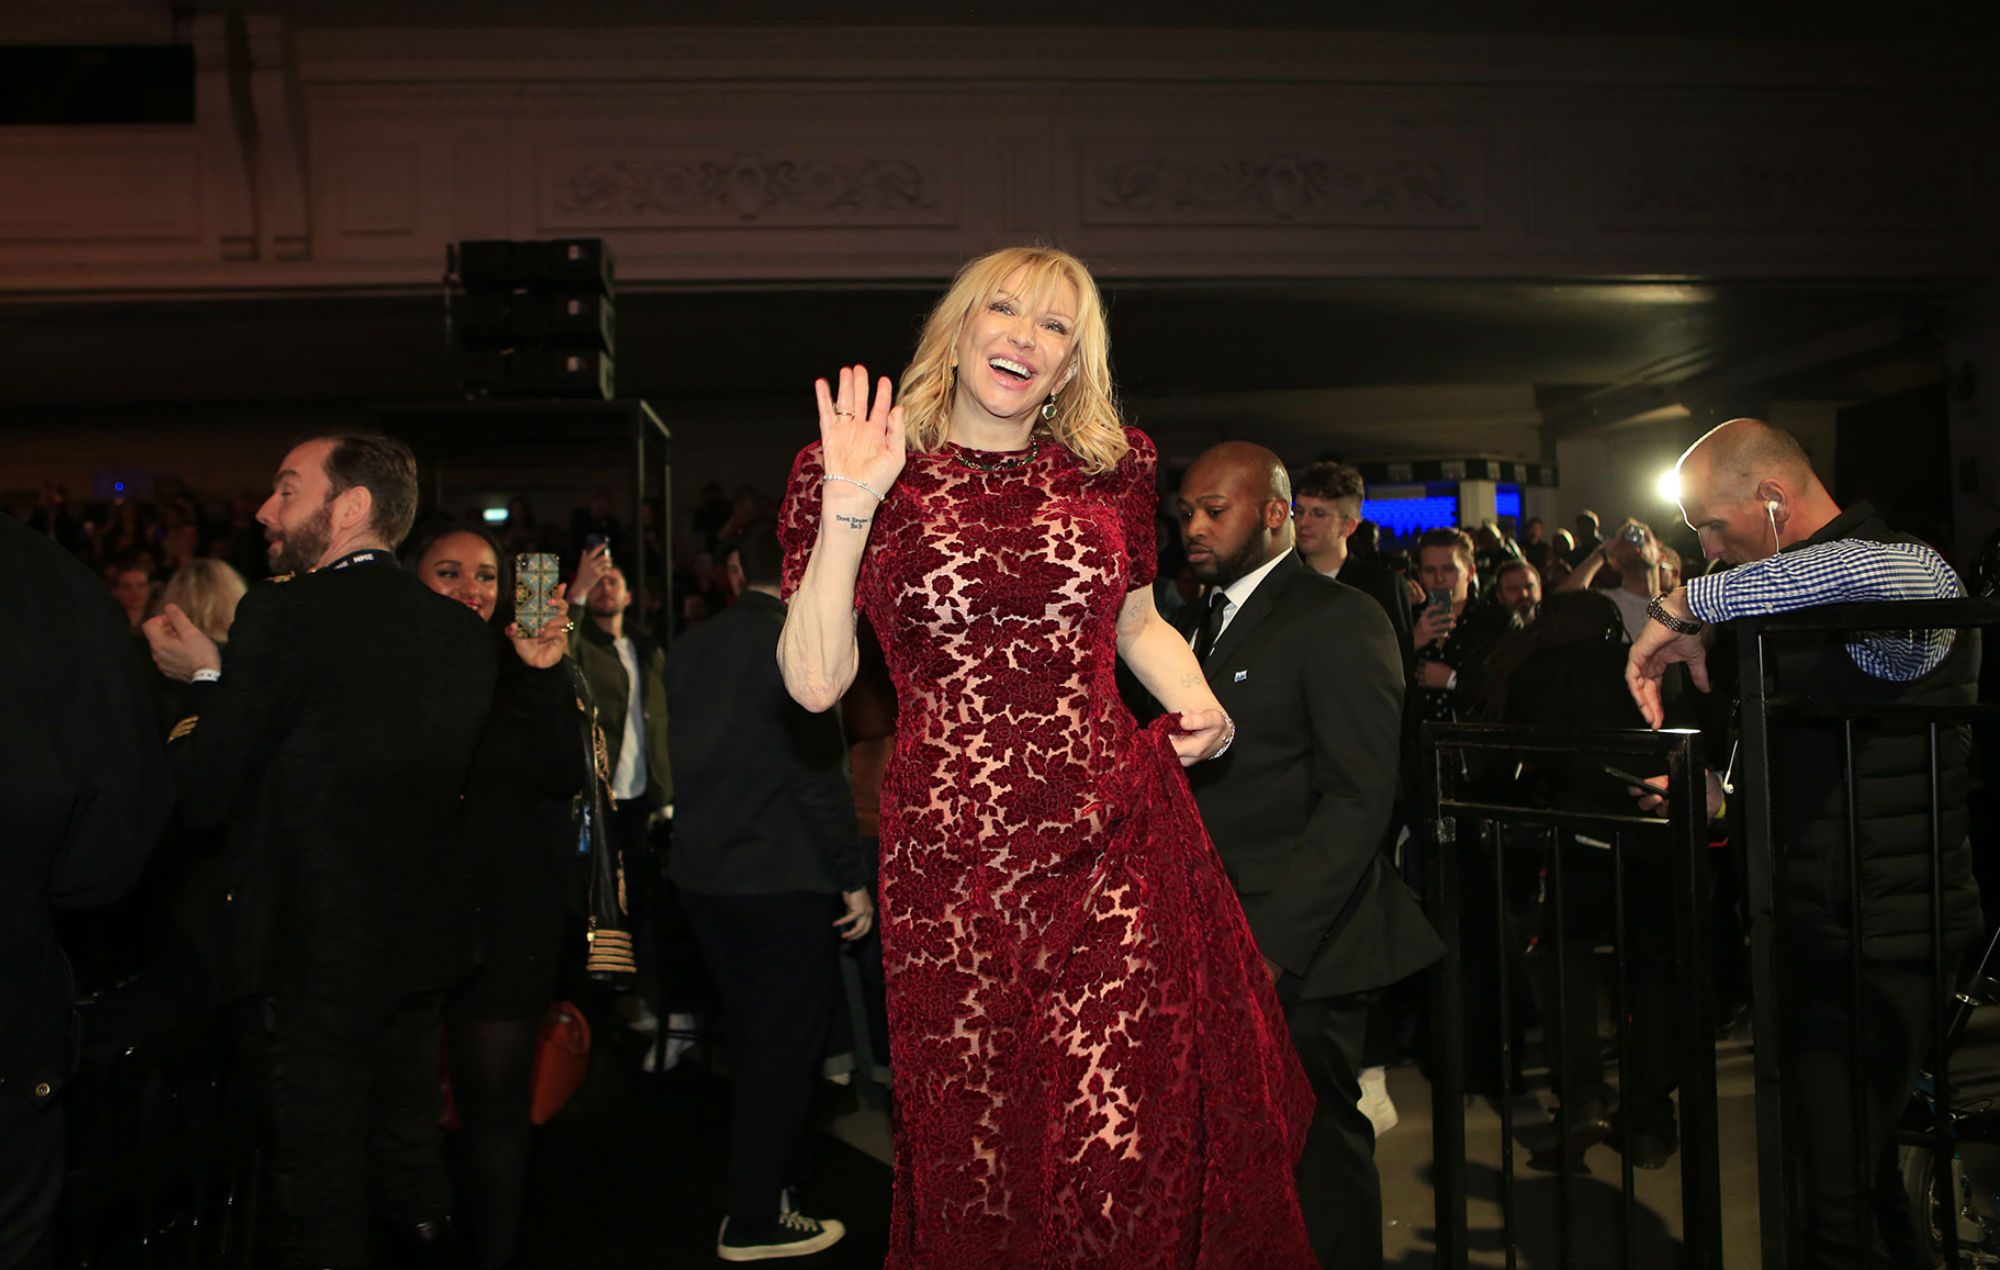 Courtney Love at the NME Awards 2020